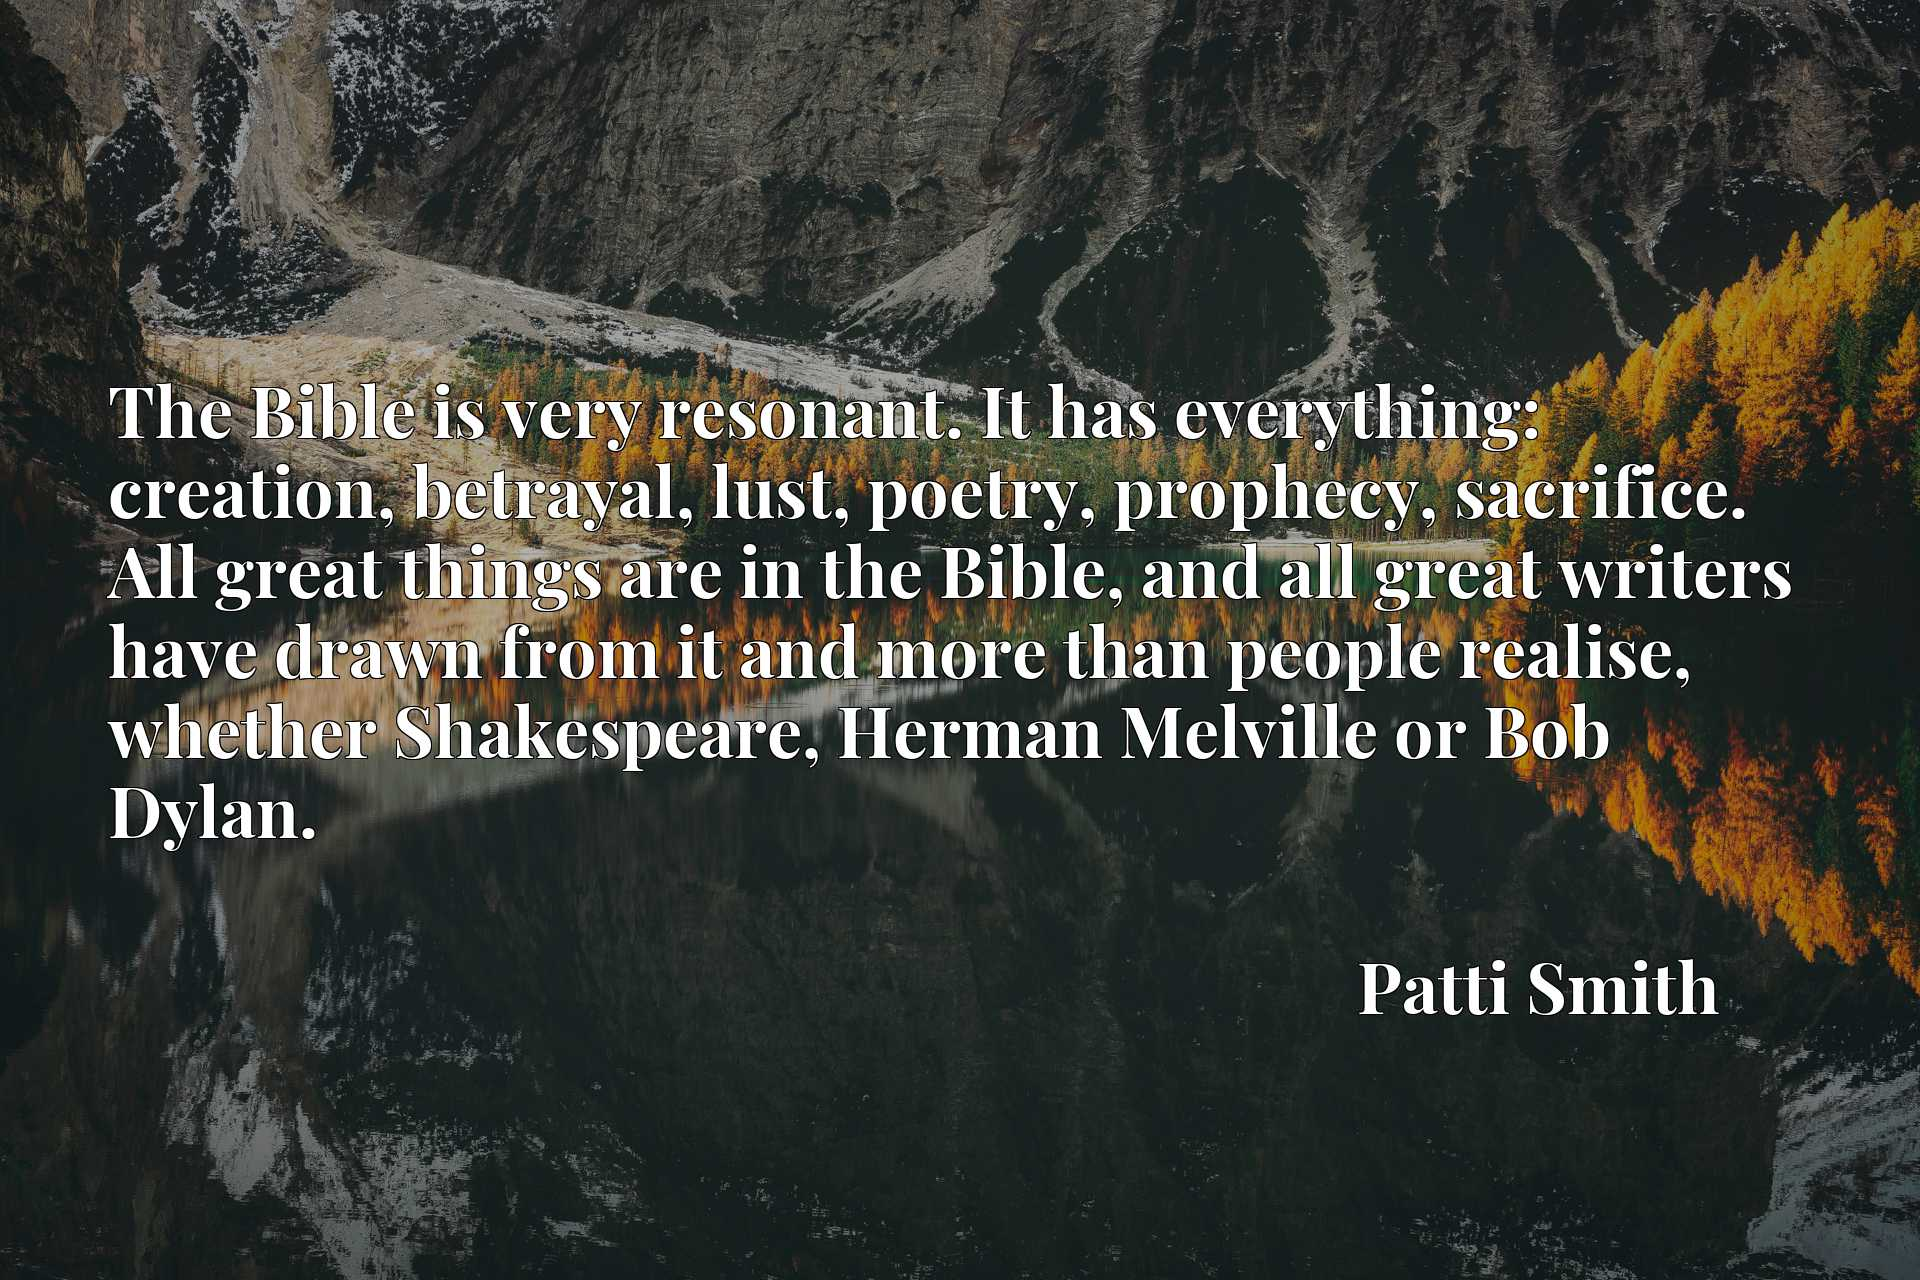 The Bible is very resonant. It has everything: creation, betrayal, lust, poetry, prophecy, sacrifice. All great things are in the Bible, and all great writers have drawn from it and more than people realise, whether Shakespeare, Herman Melville or Bob Dylan.